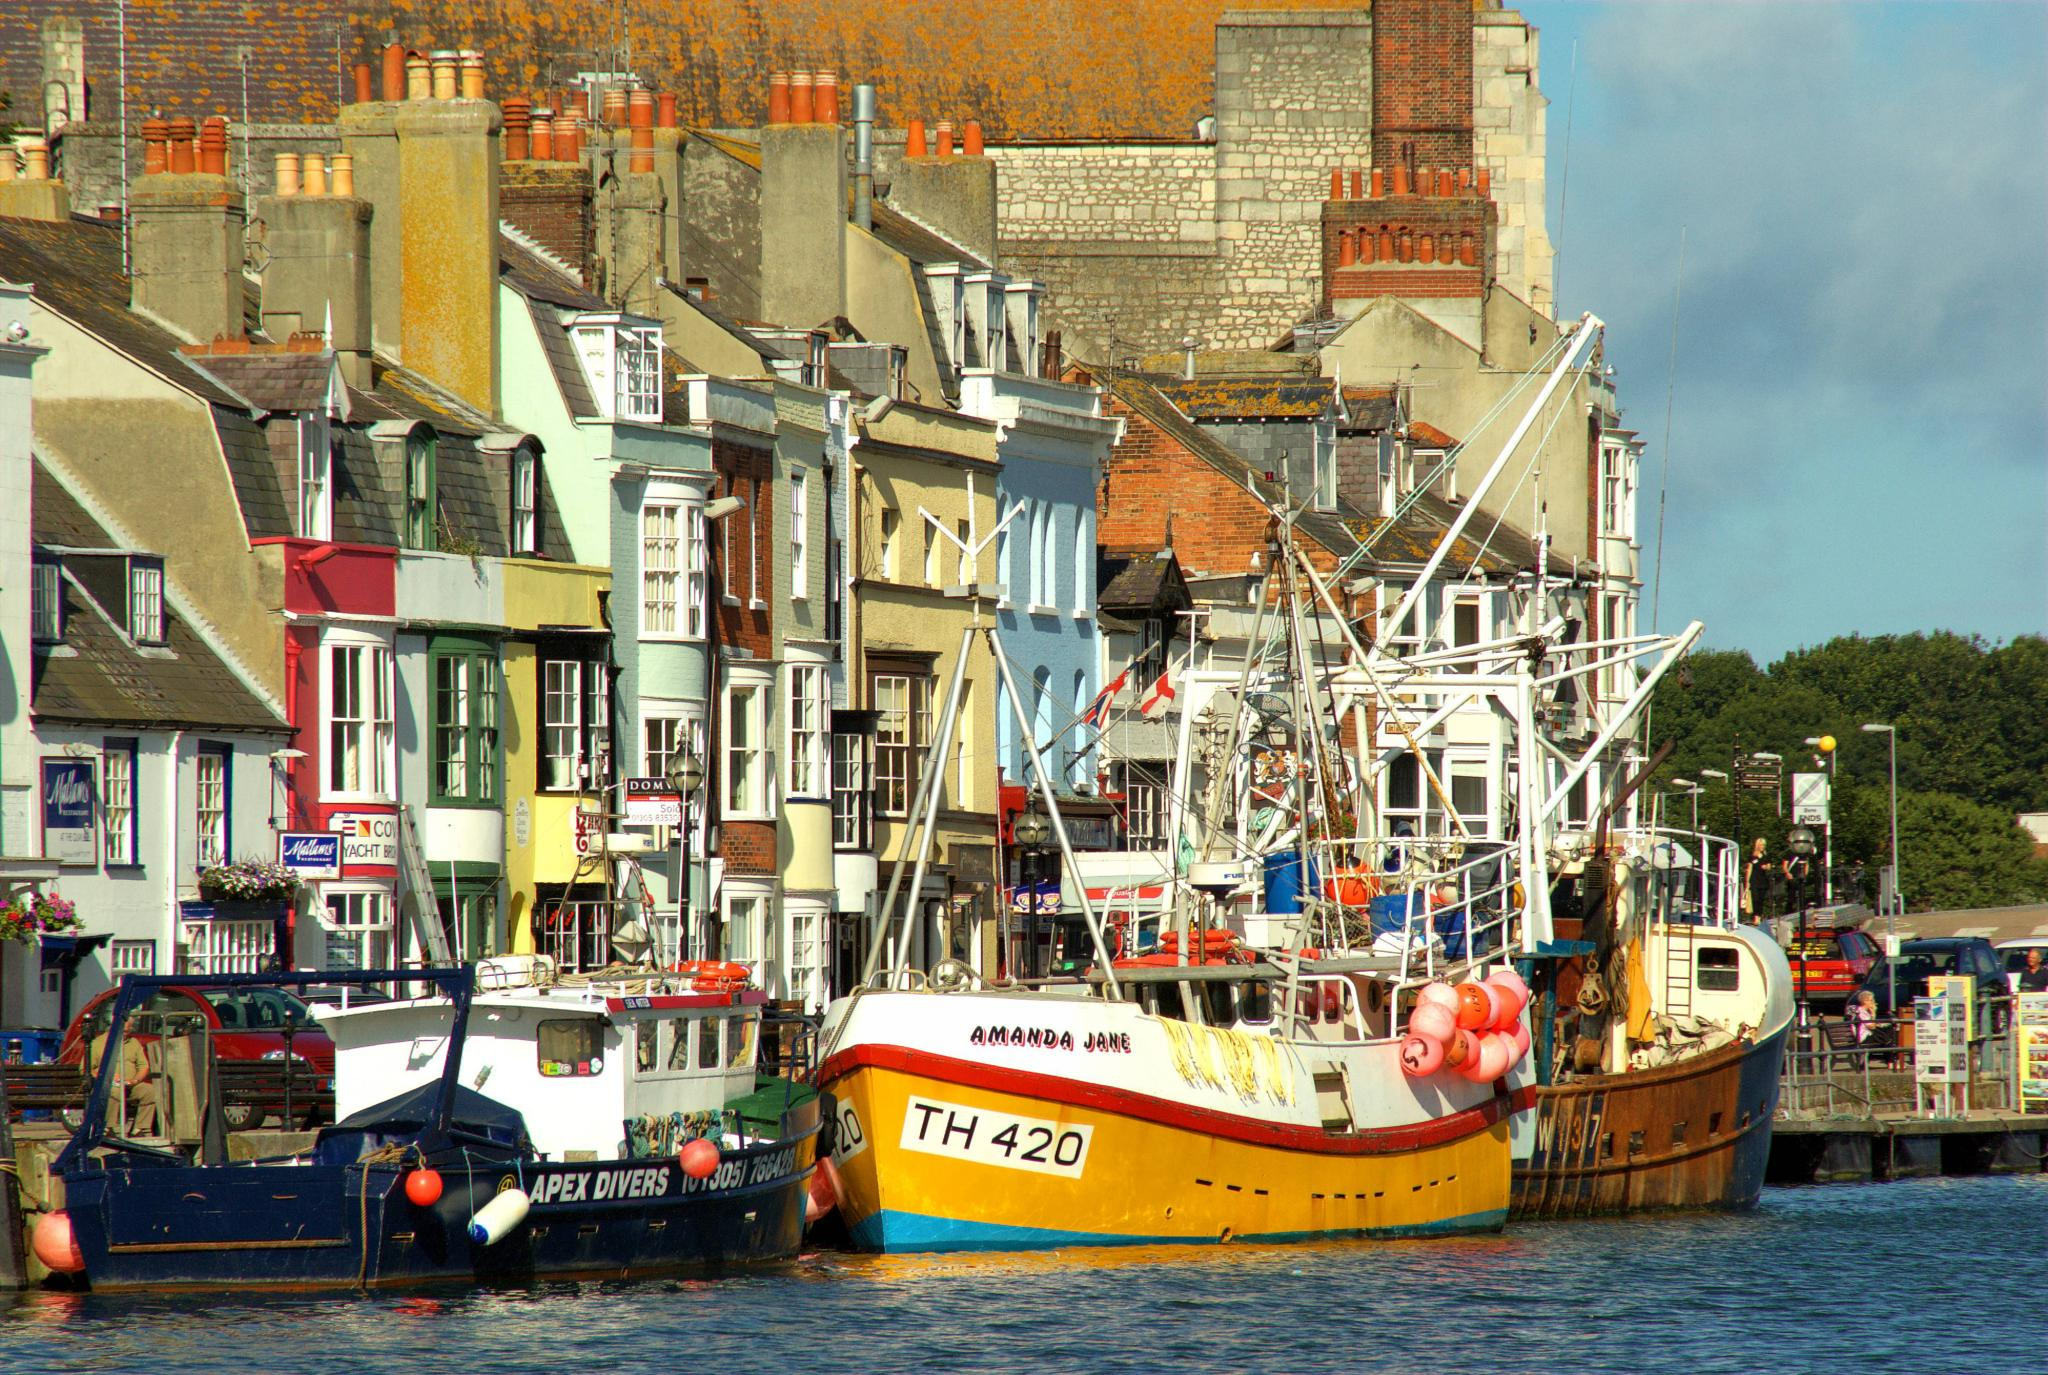 weymouth harbour by paulrobin.andrews